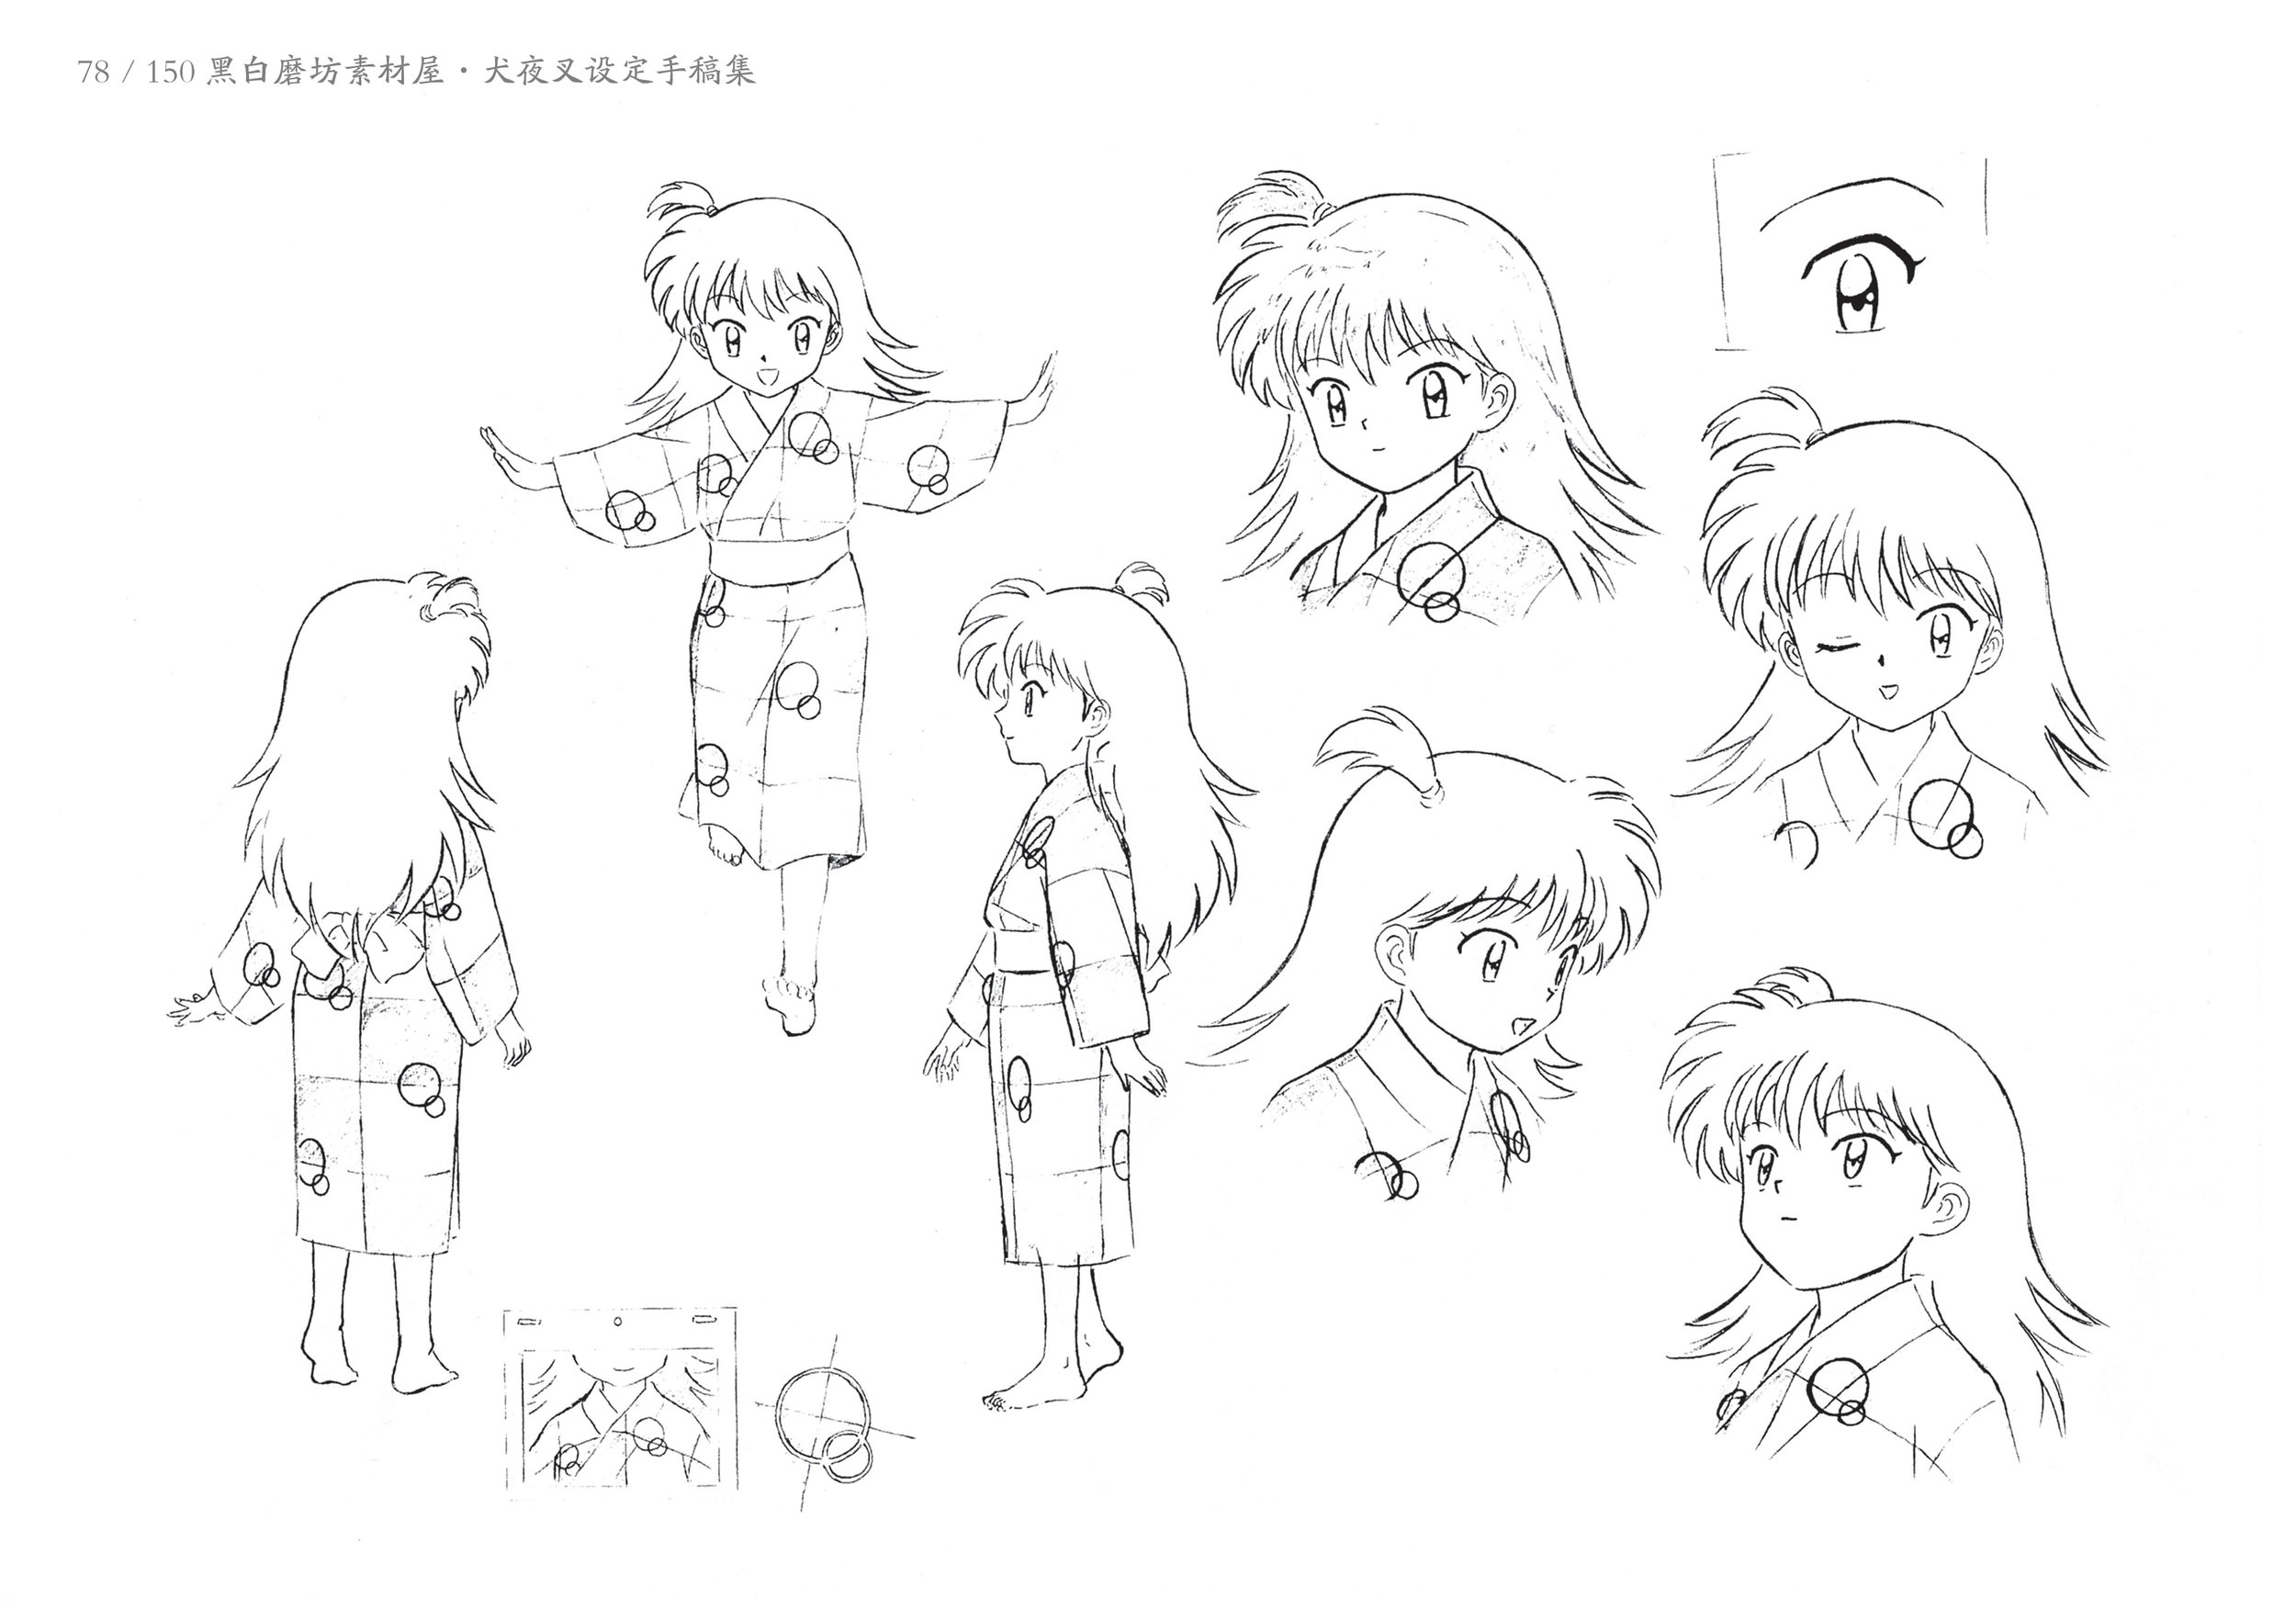 Art of the Inuyasha A - 69.jpg